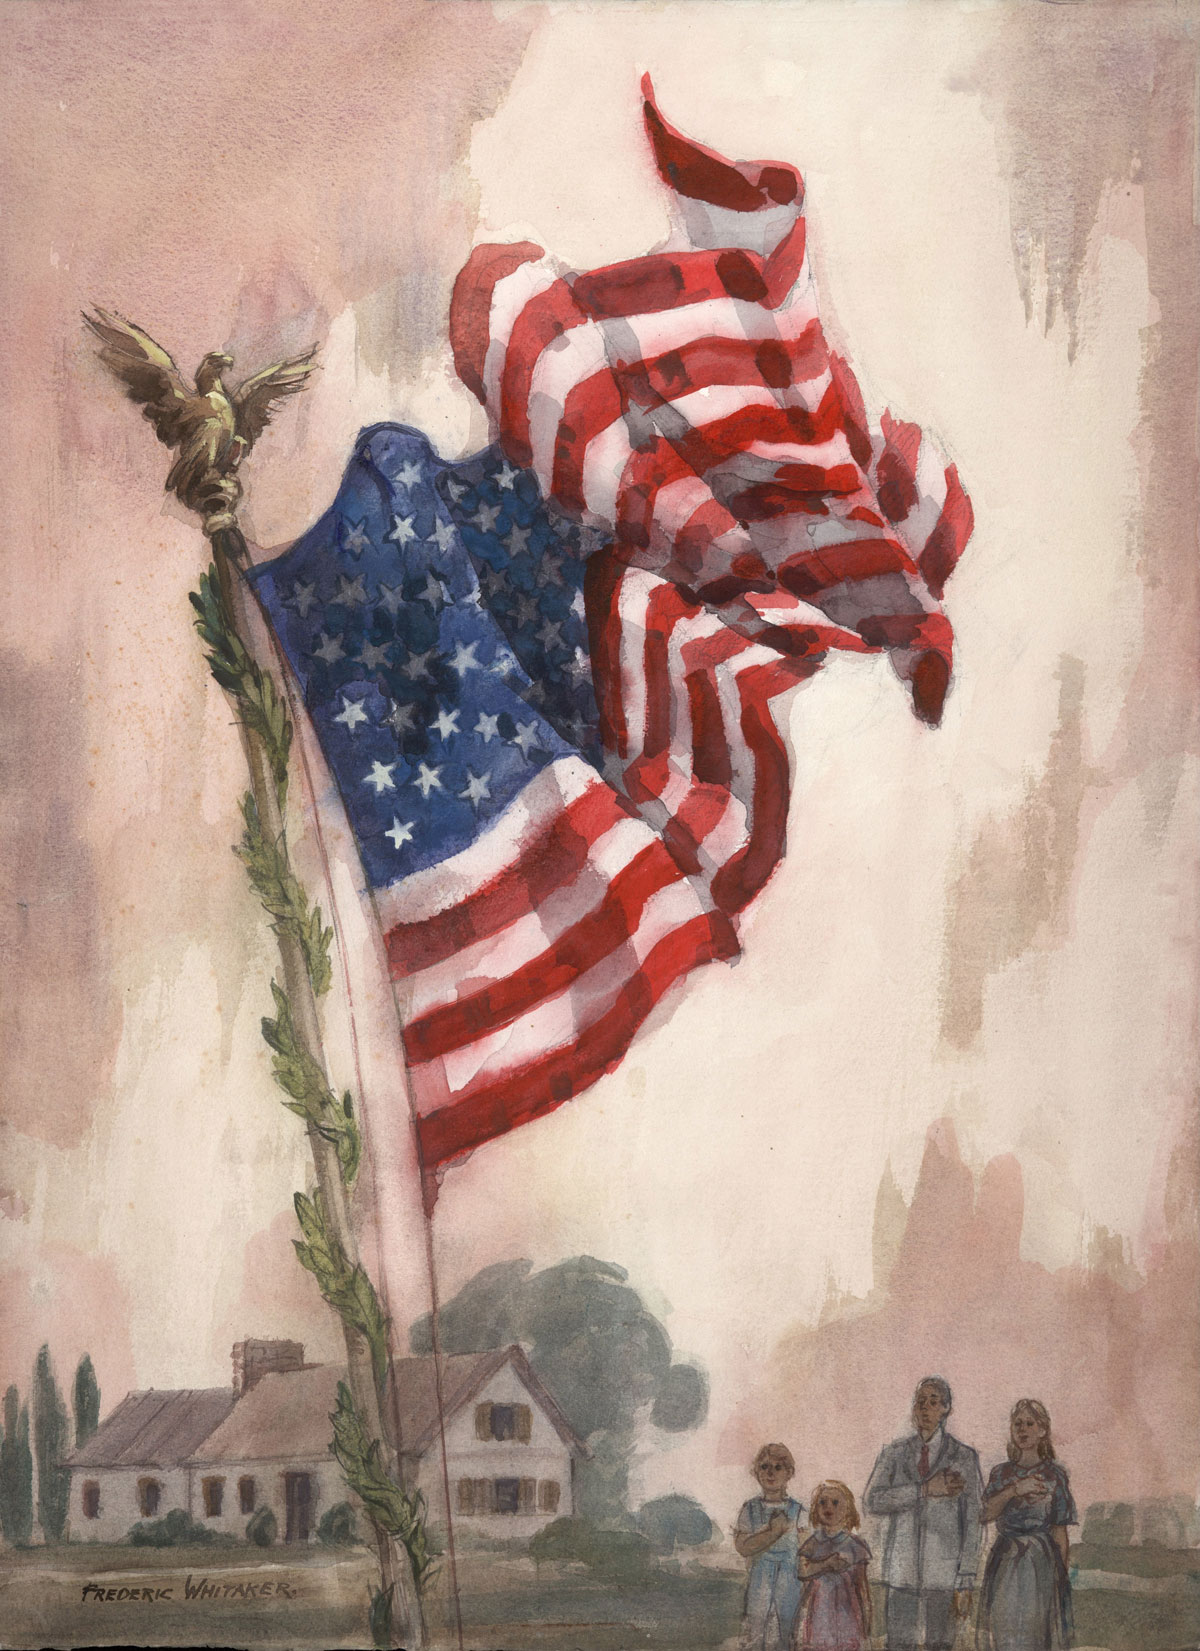 """I Pledge Allegiance To The Flag"" 1967 © Frederic Whitaker 30x22 inches"